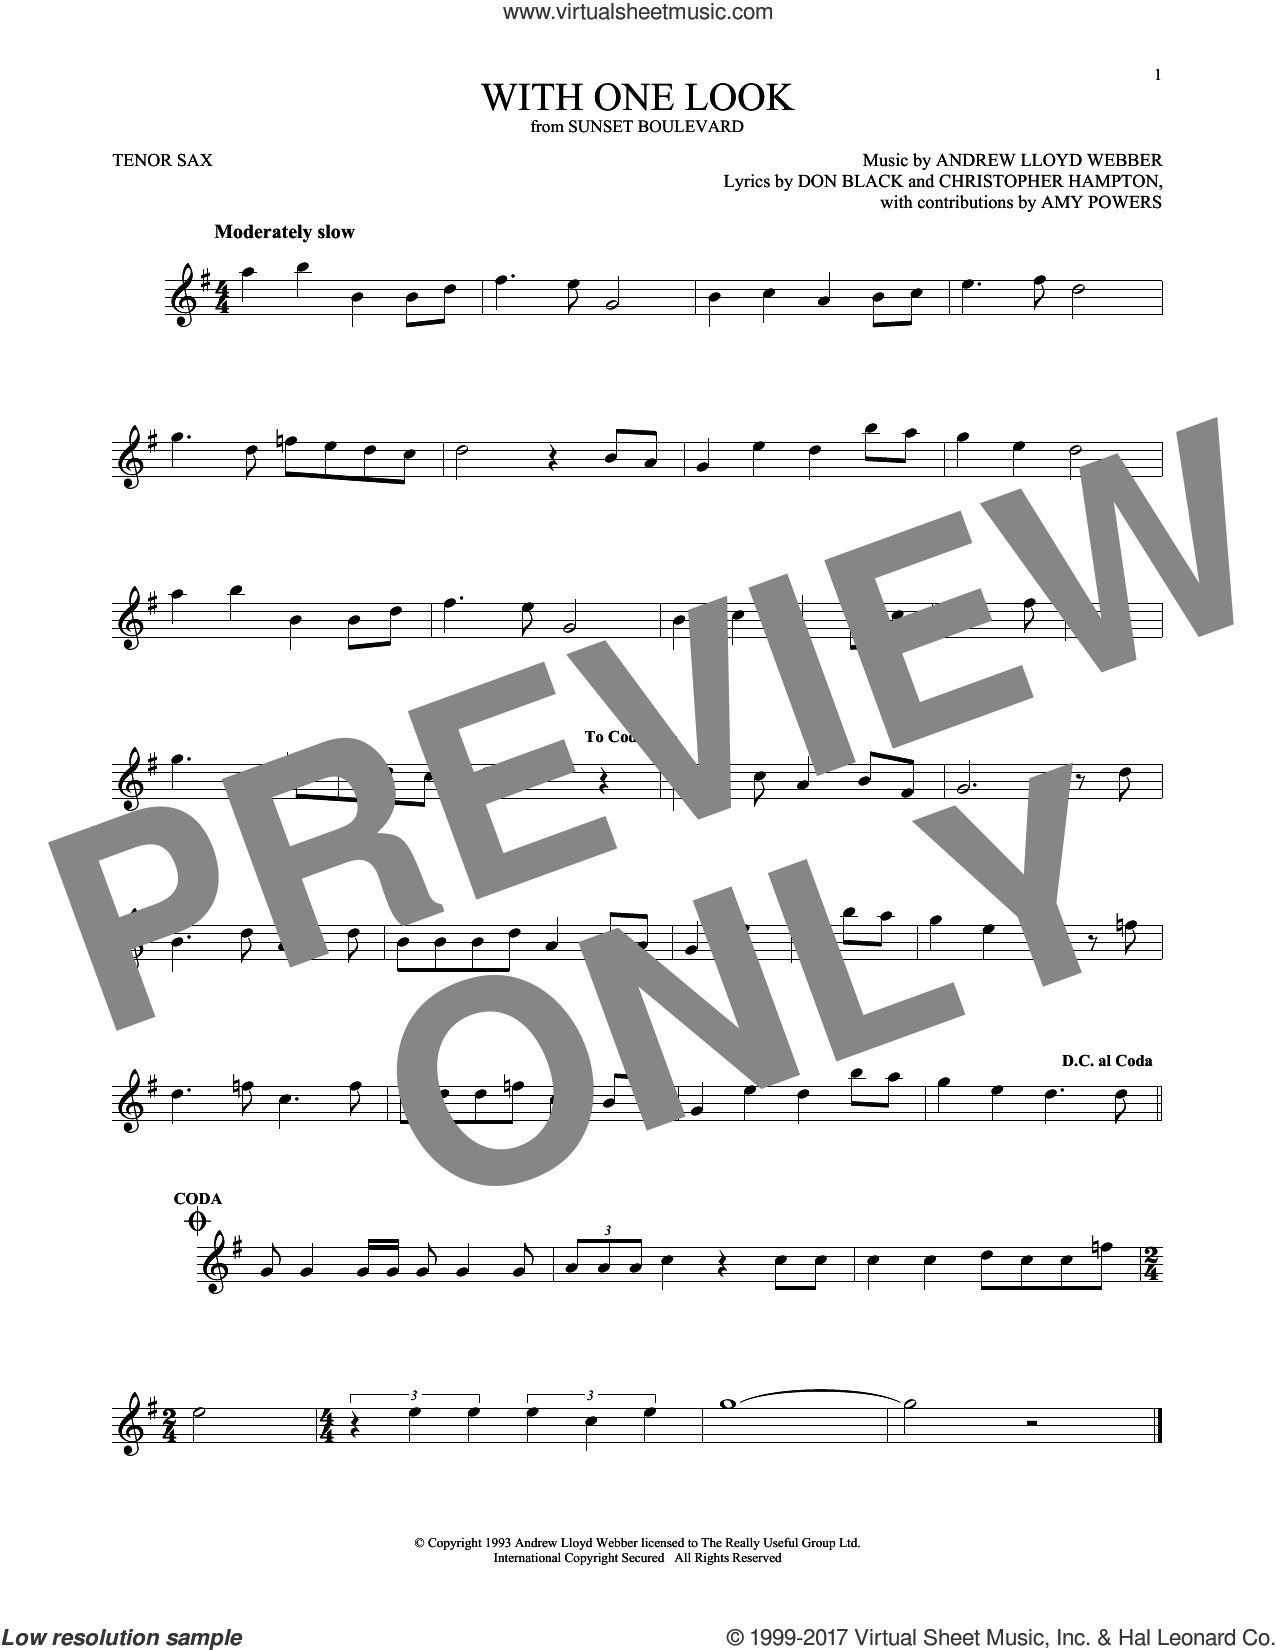 With One Look sheet music for tenor saxophone solo by Andrew Lloyd Webber, Christopher Hampton and Don Black, intermediate skill level